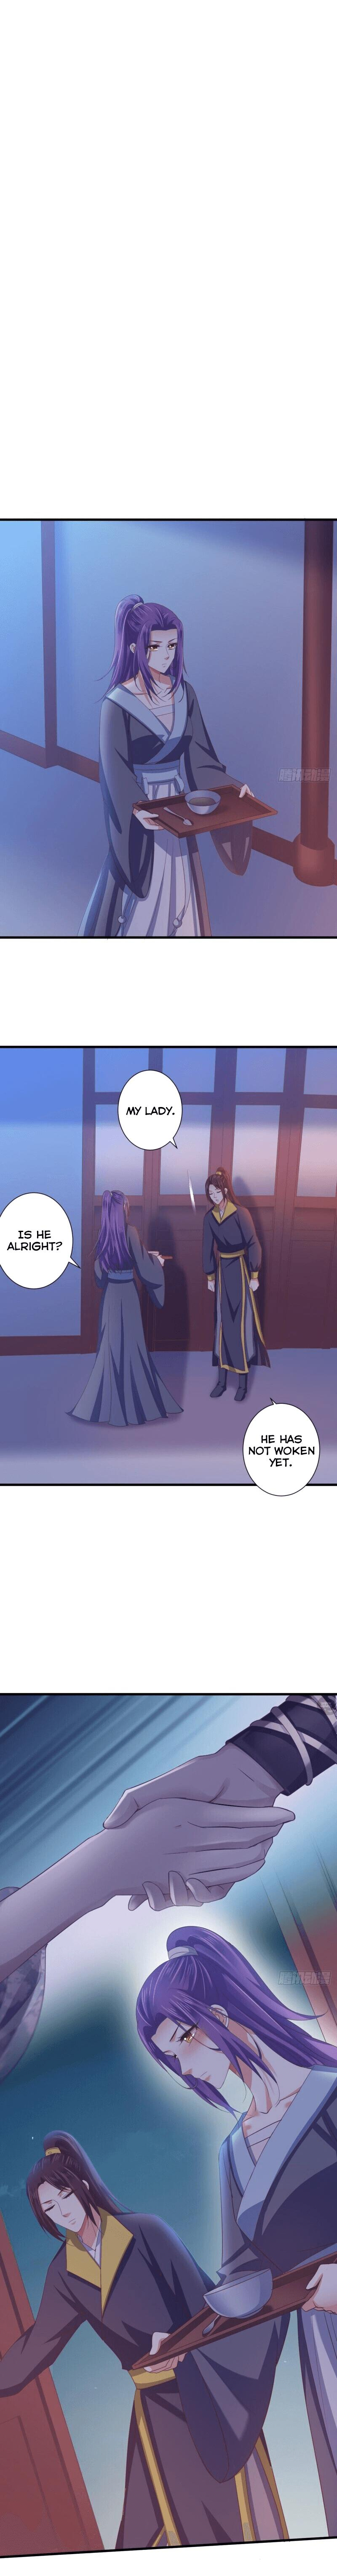 Bewitching Empress So Pampered By Her Tyrant Chapter 36: Poisoned Leg Wound page 5 - Mangakakalots.com